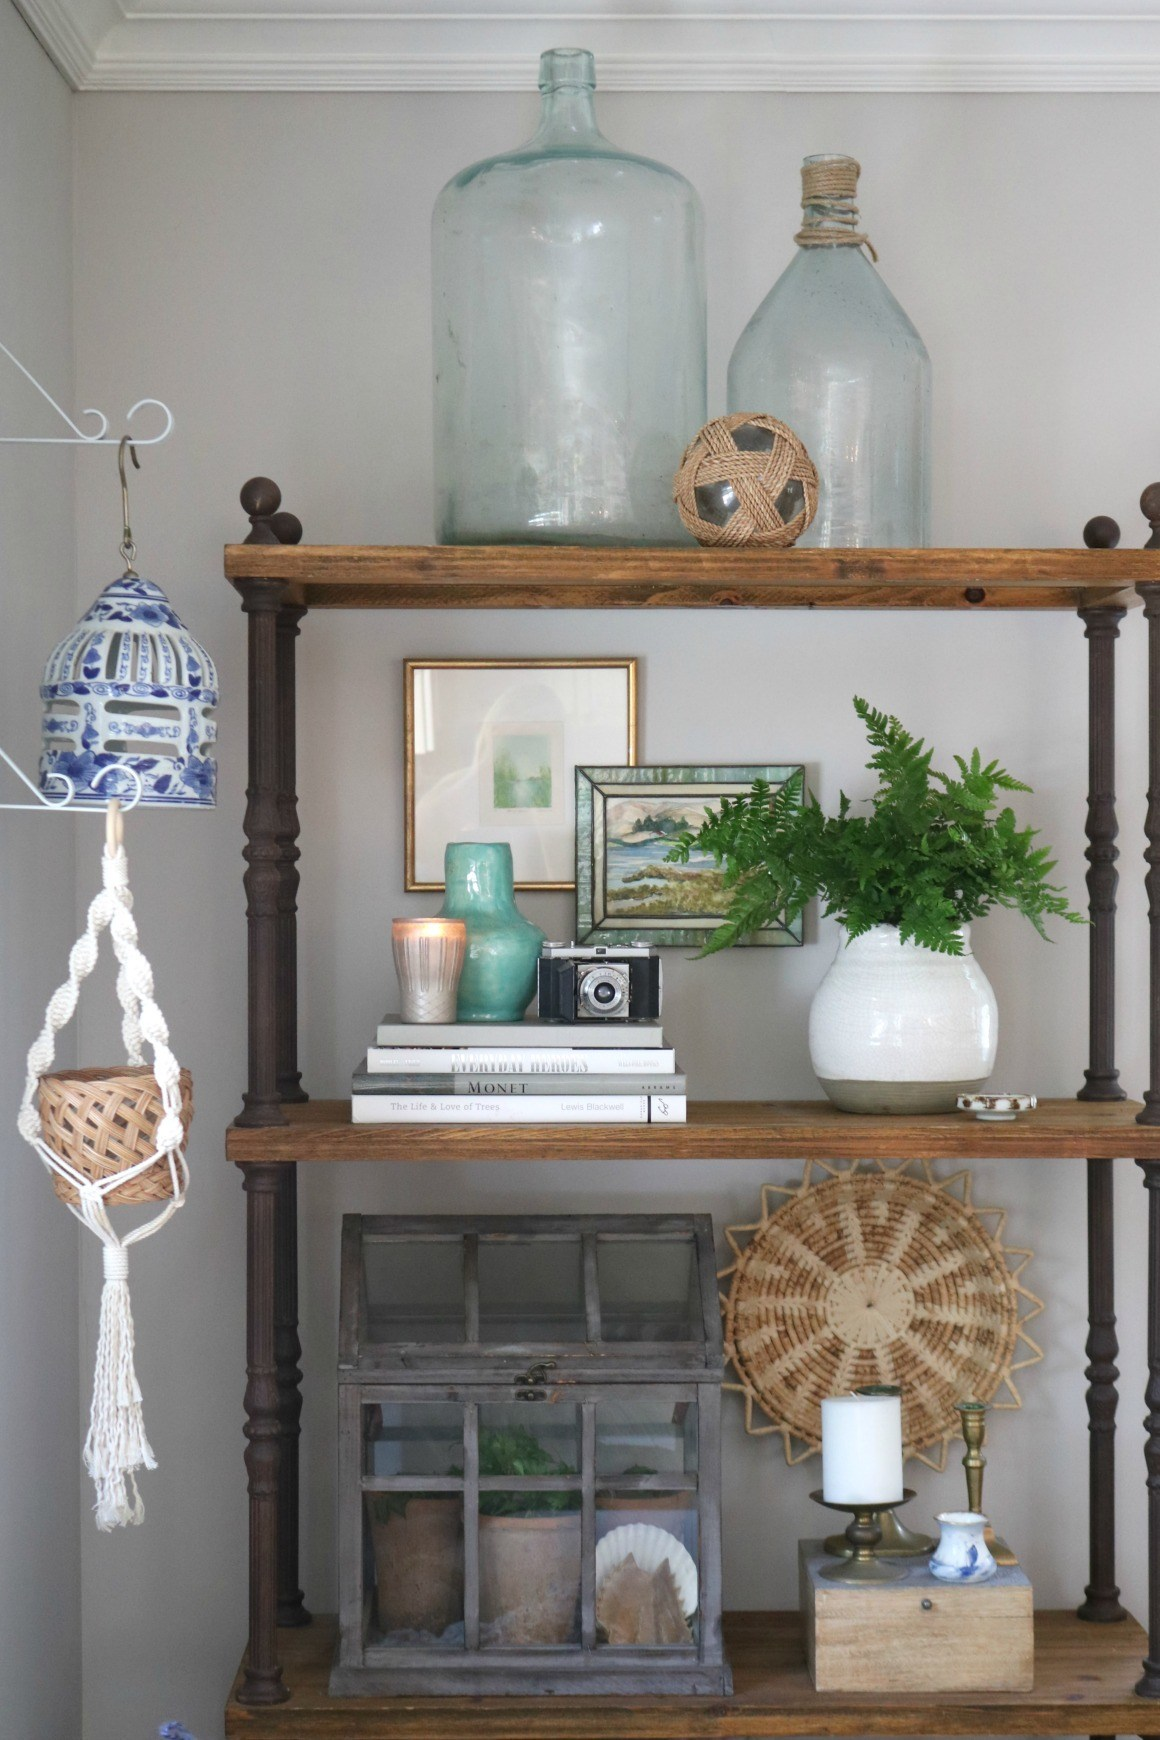 The-House-Decorated-with-only-Thrift-Store-Decor-6.jpg